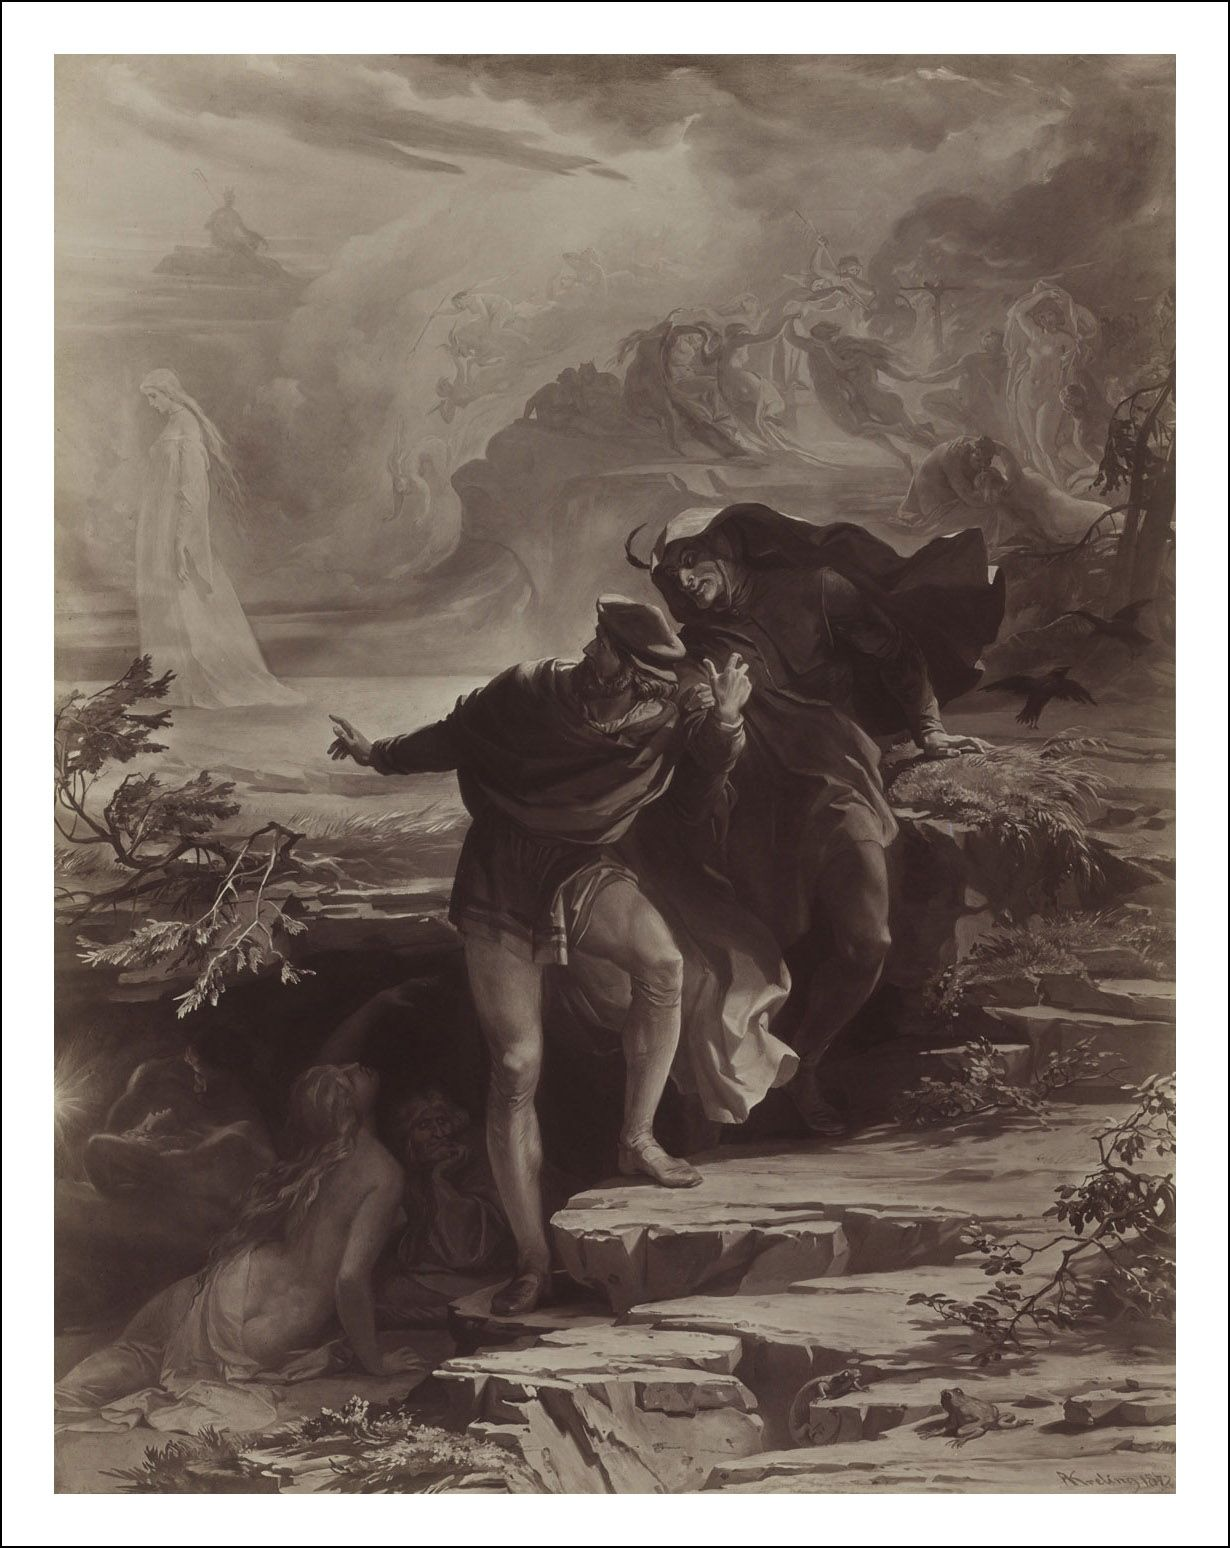 Johann Wolfgang Von Goethe Libros Faust A Tragedy Illustrated By Prof August Von Kreling